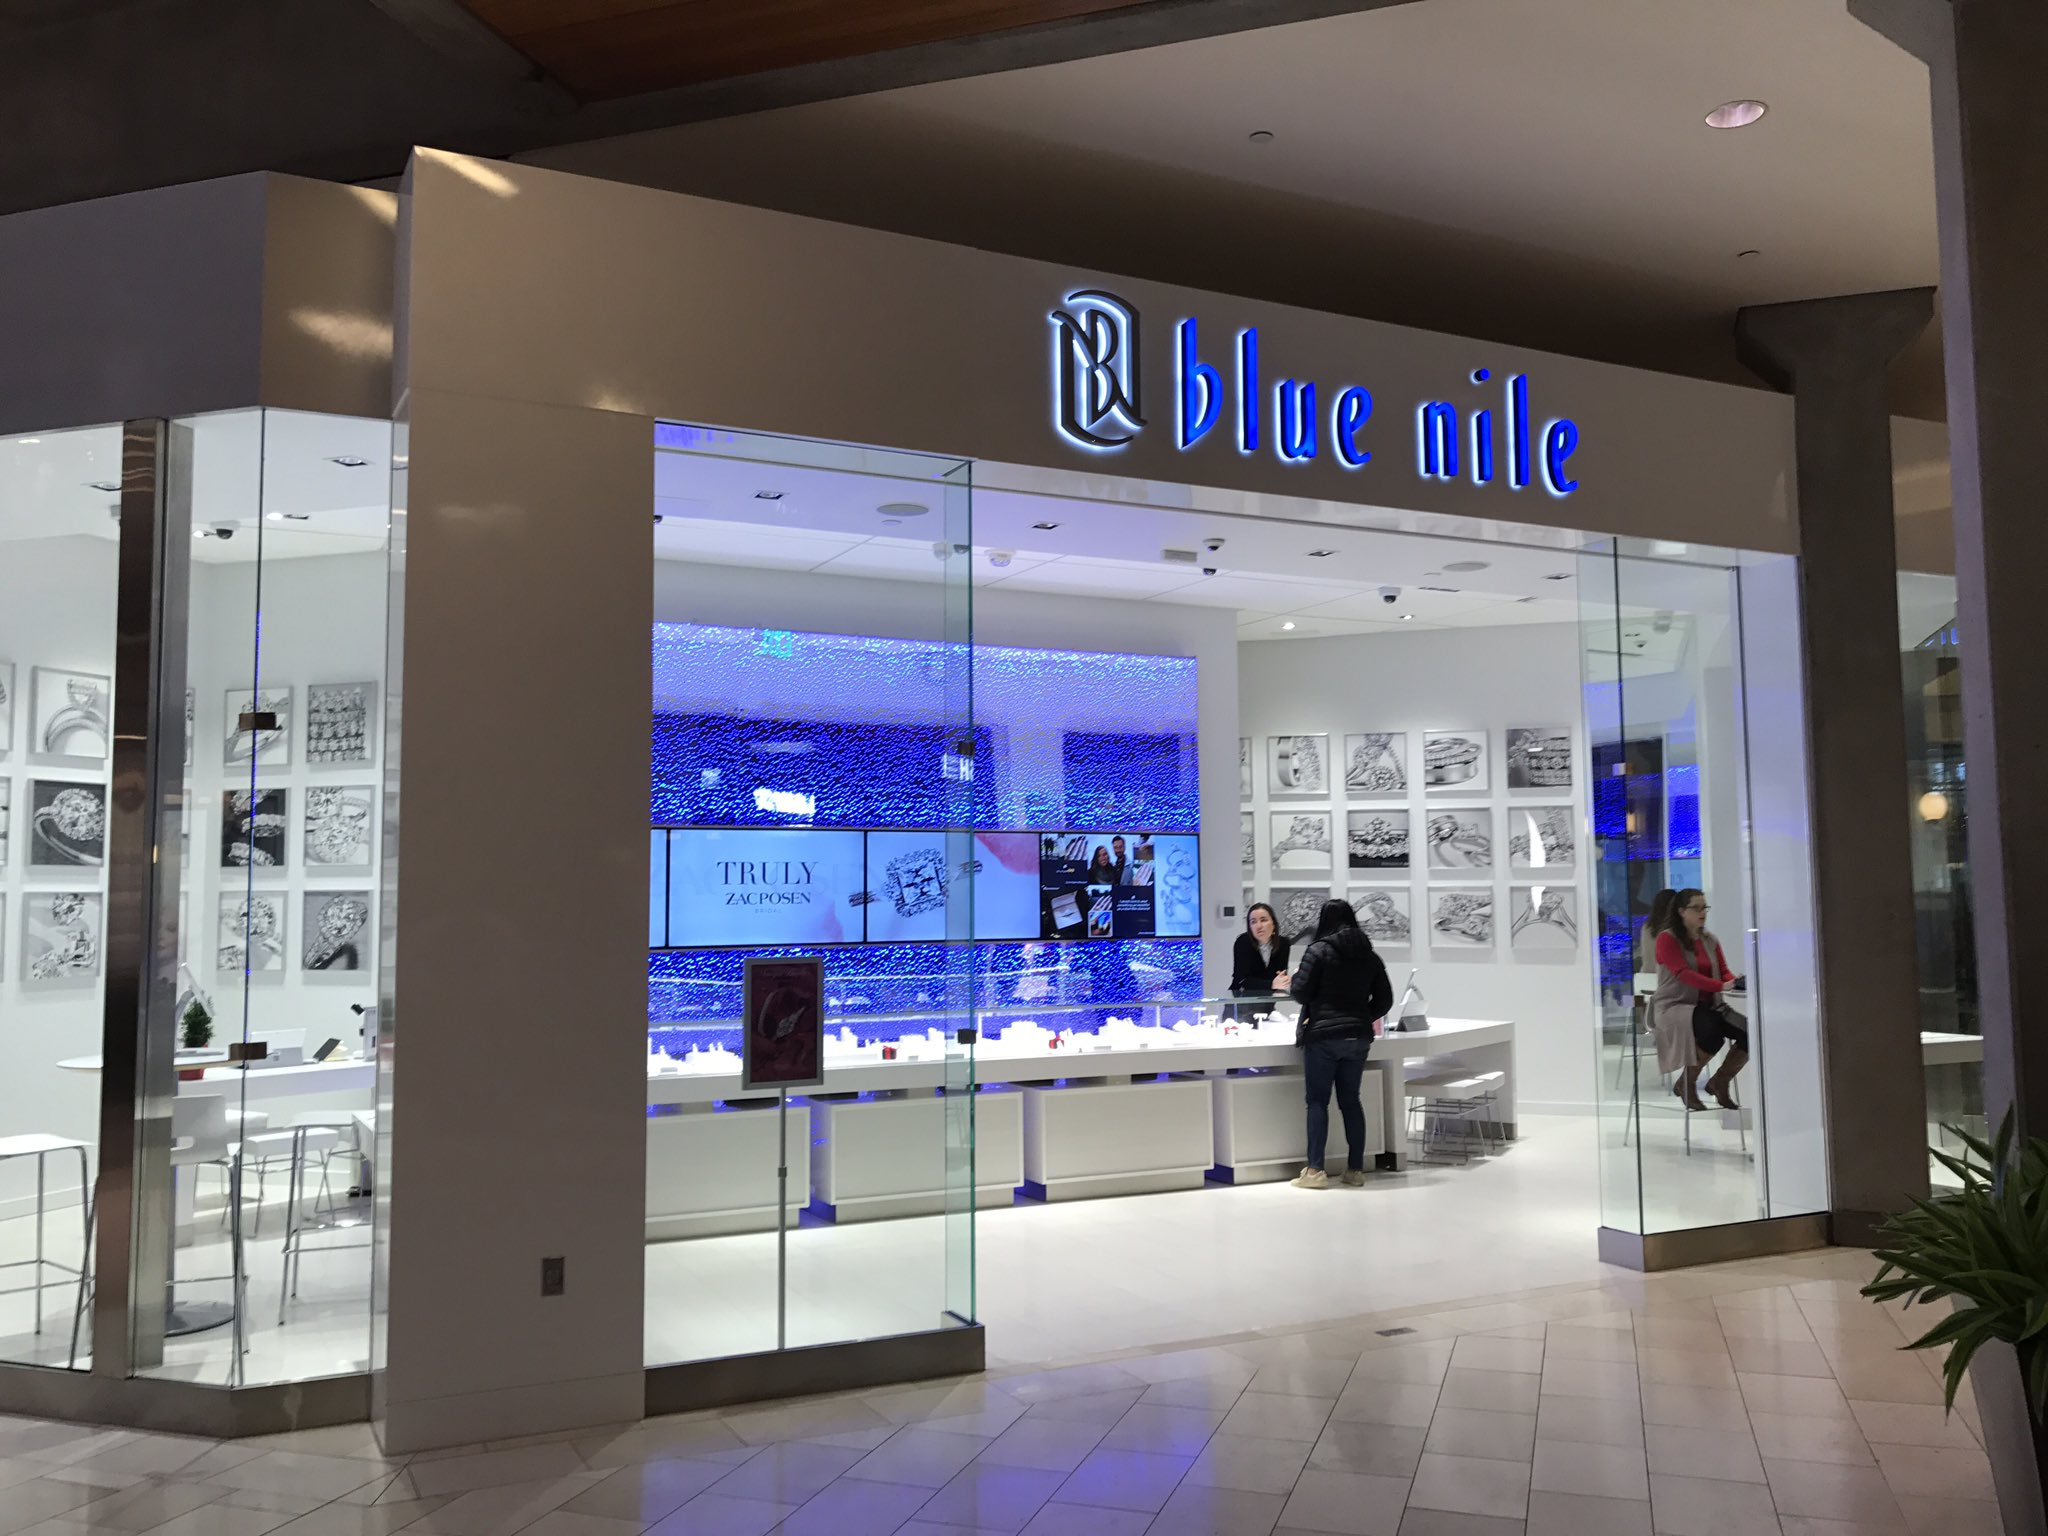 Blue nile opens webrooms in bellevue square for Roosevelt field jewelry stores